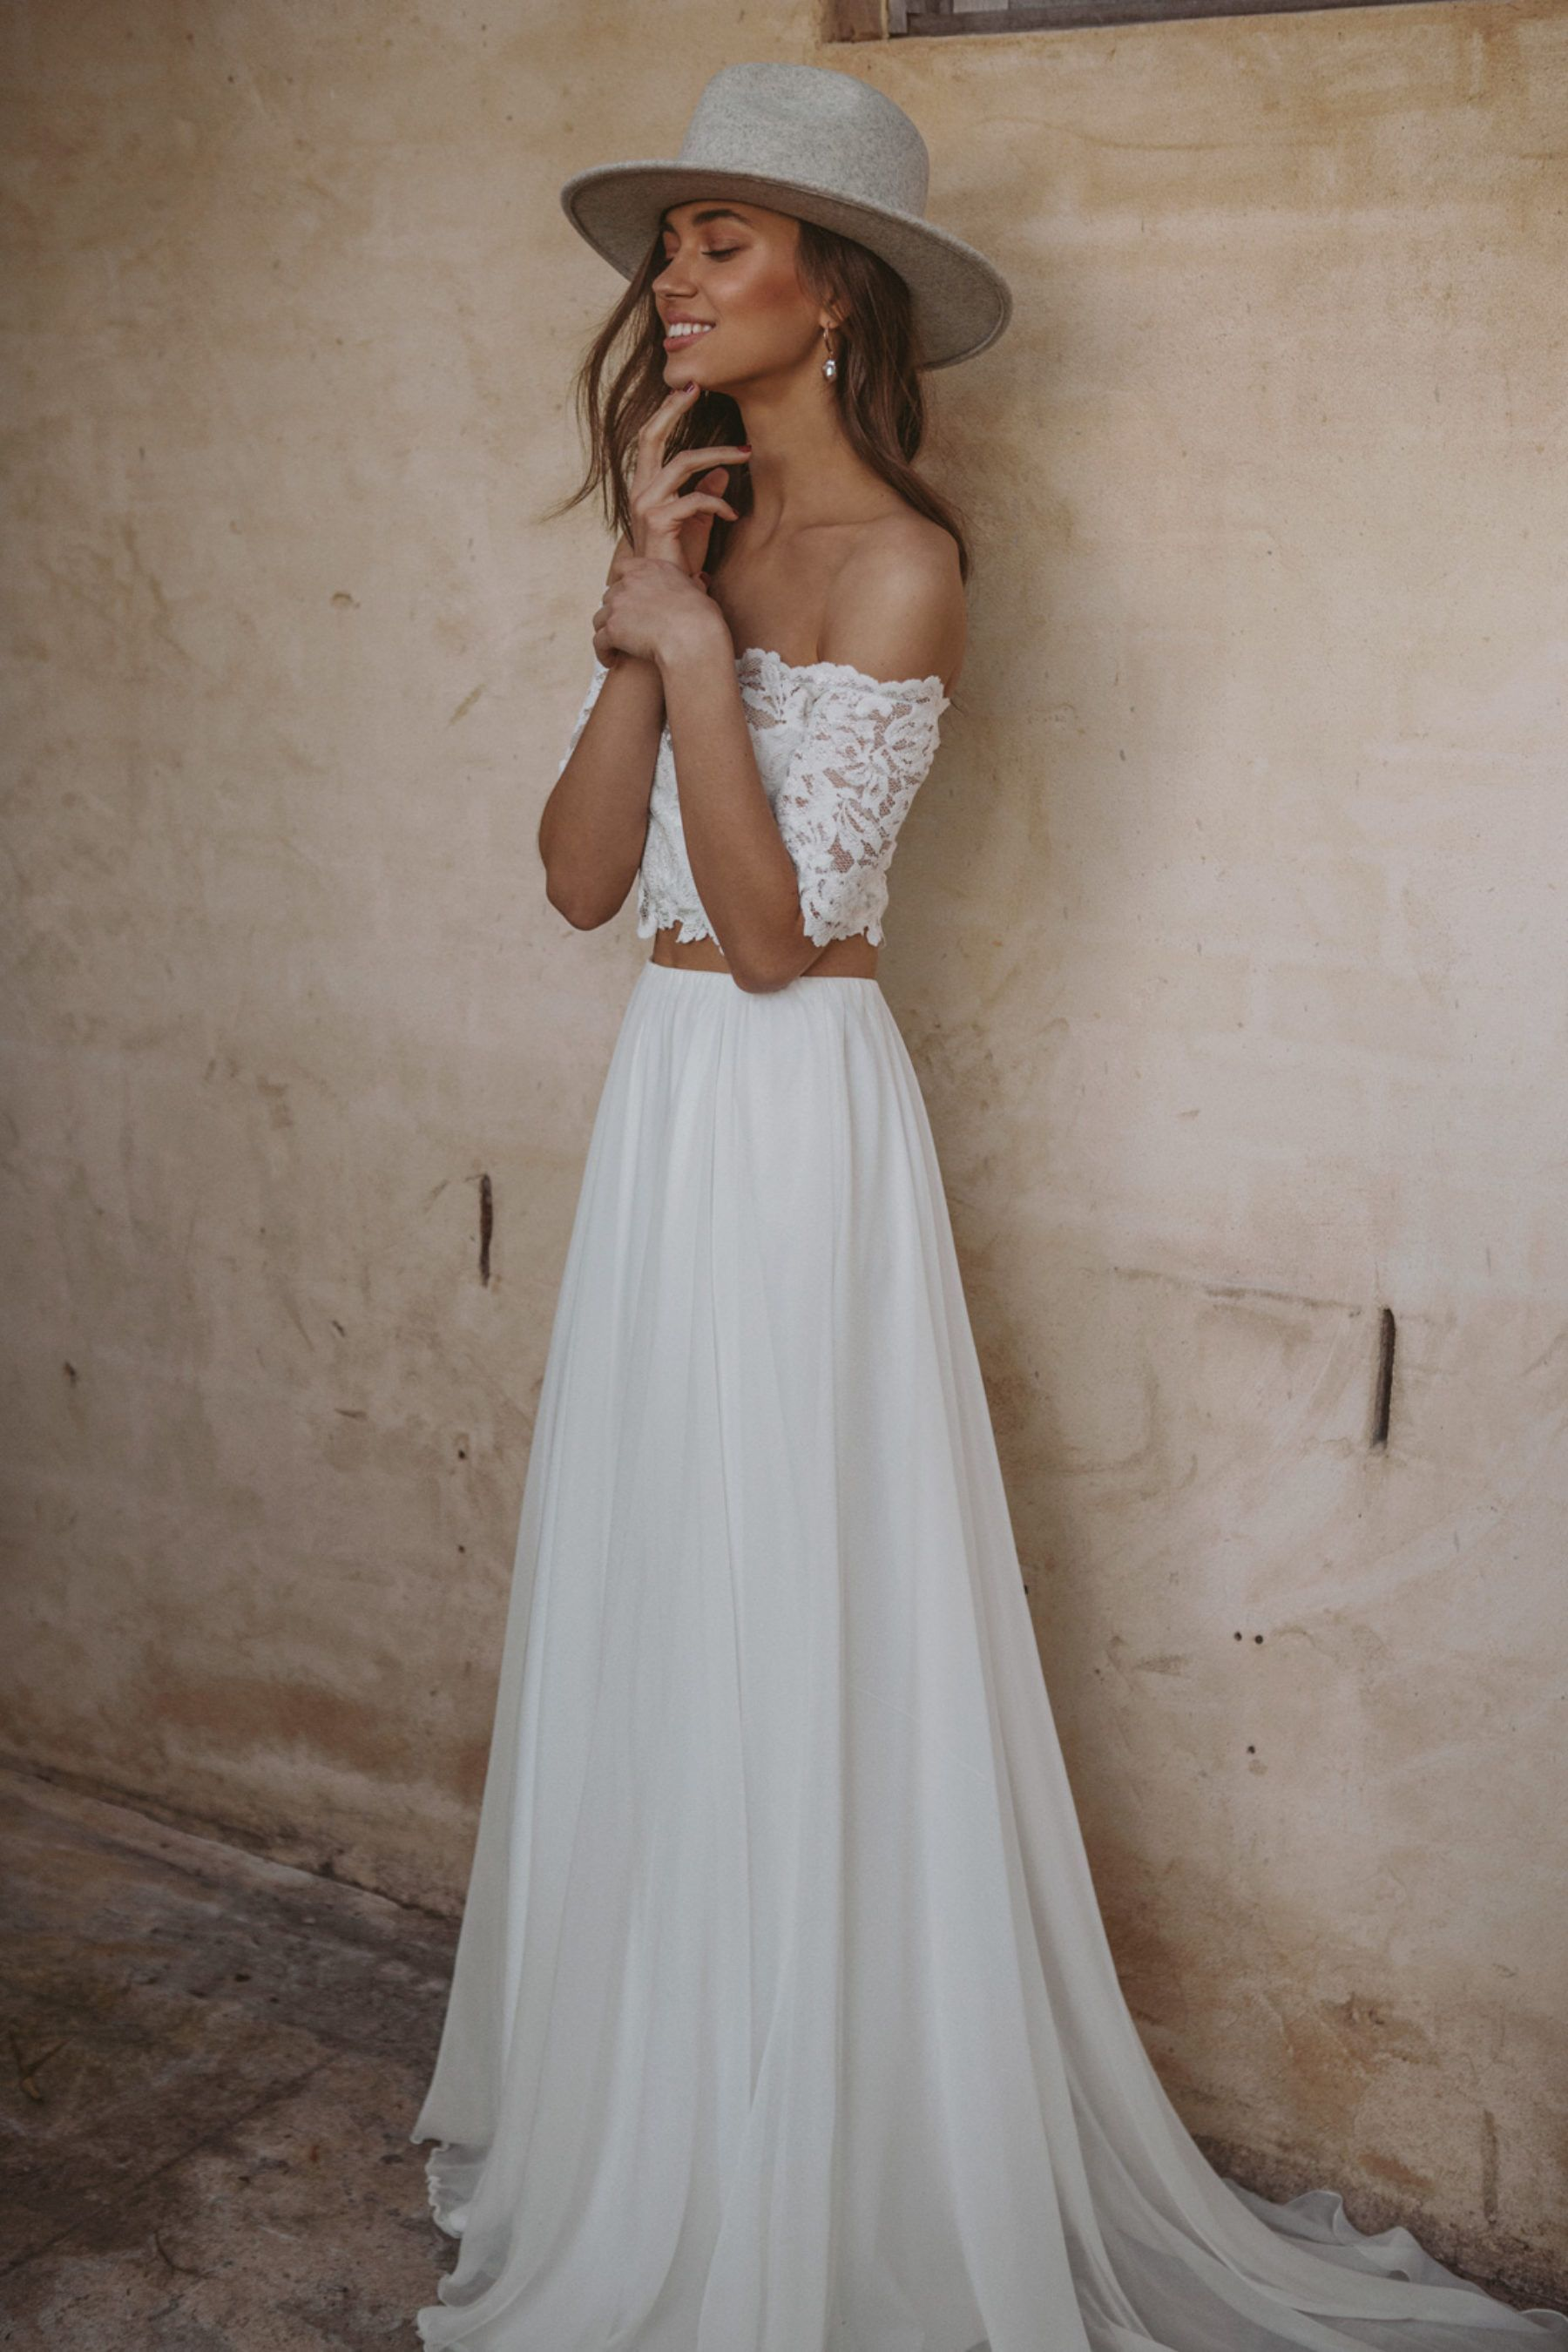 Les Deux By Grace Loves Lace Nouba Com Au Two Piece Wedding Dress Online Wedding Dress Shopping 2 Piece Wedding Dress